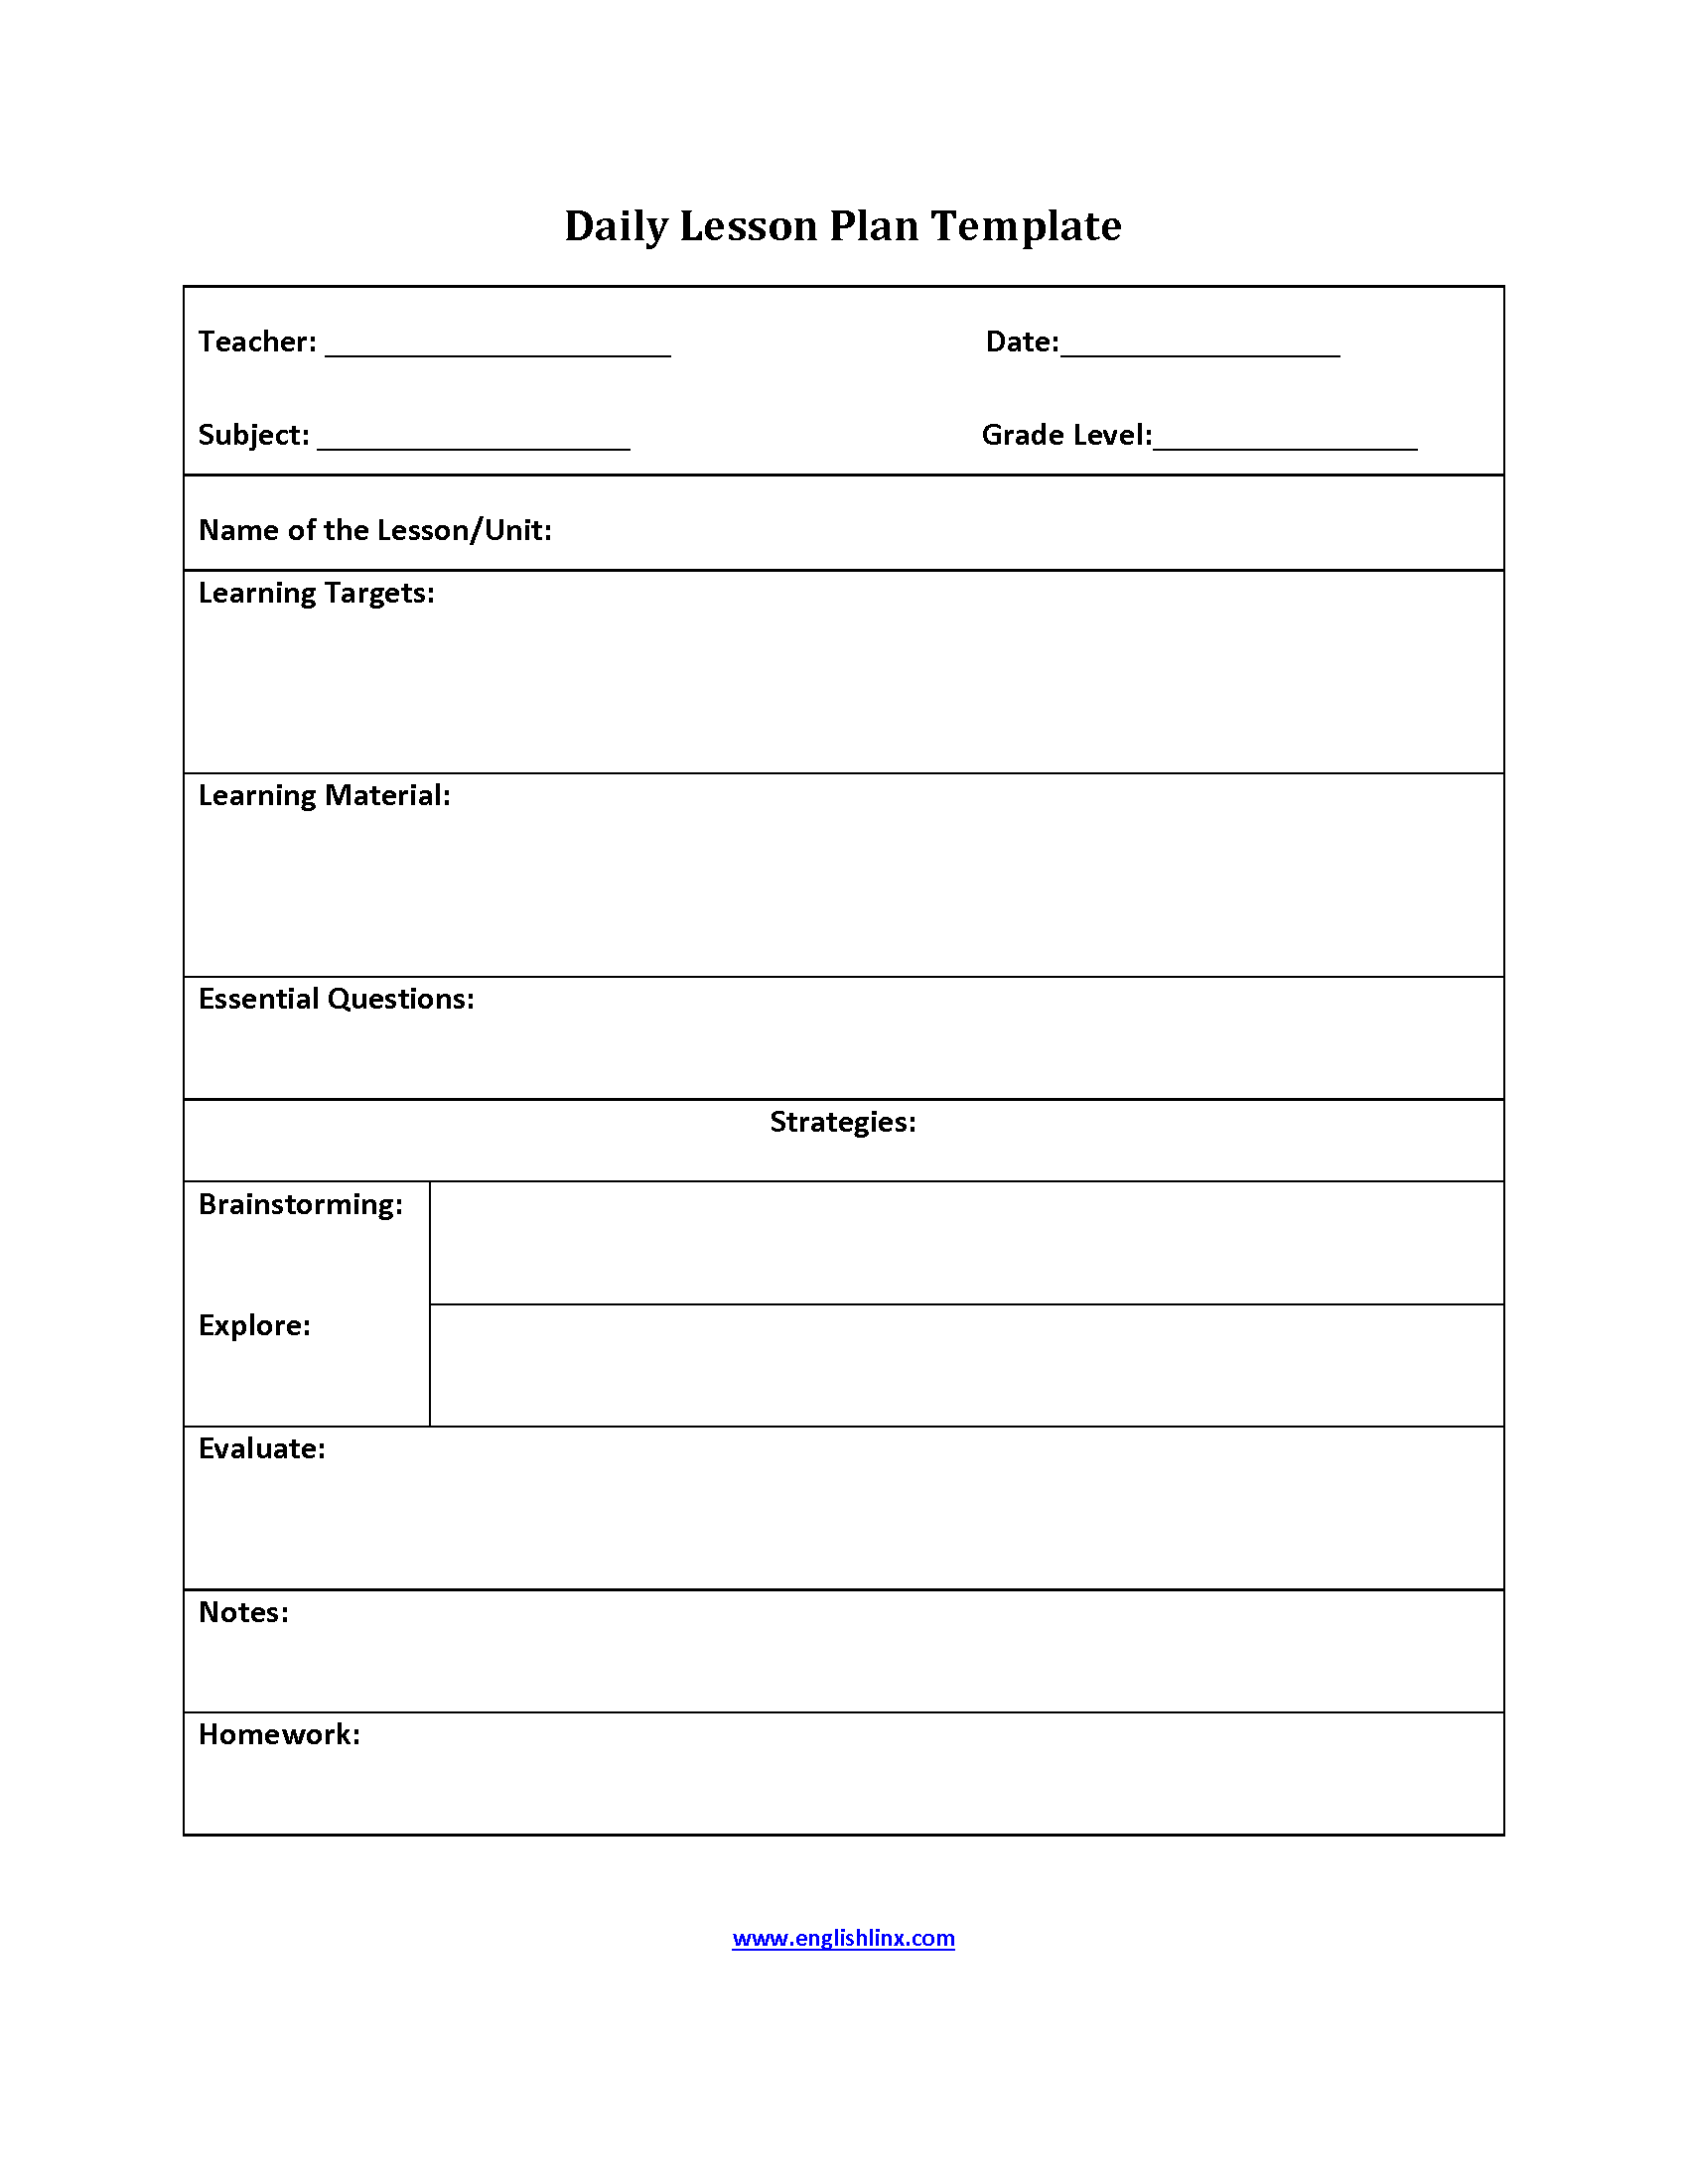 Englishlinxcom Lesson Plan Template - Free daily lesson plan template printable